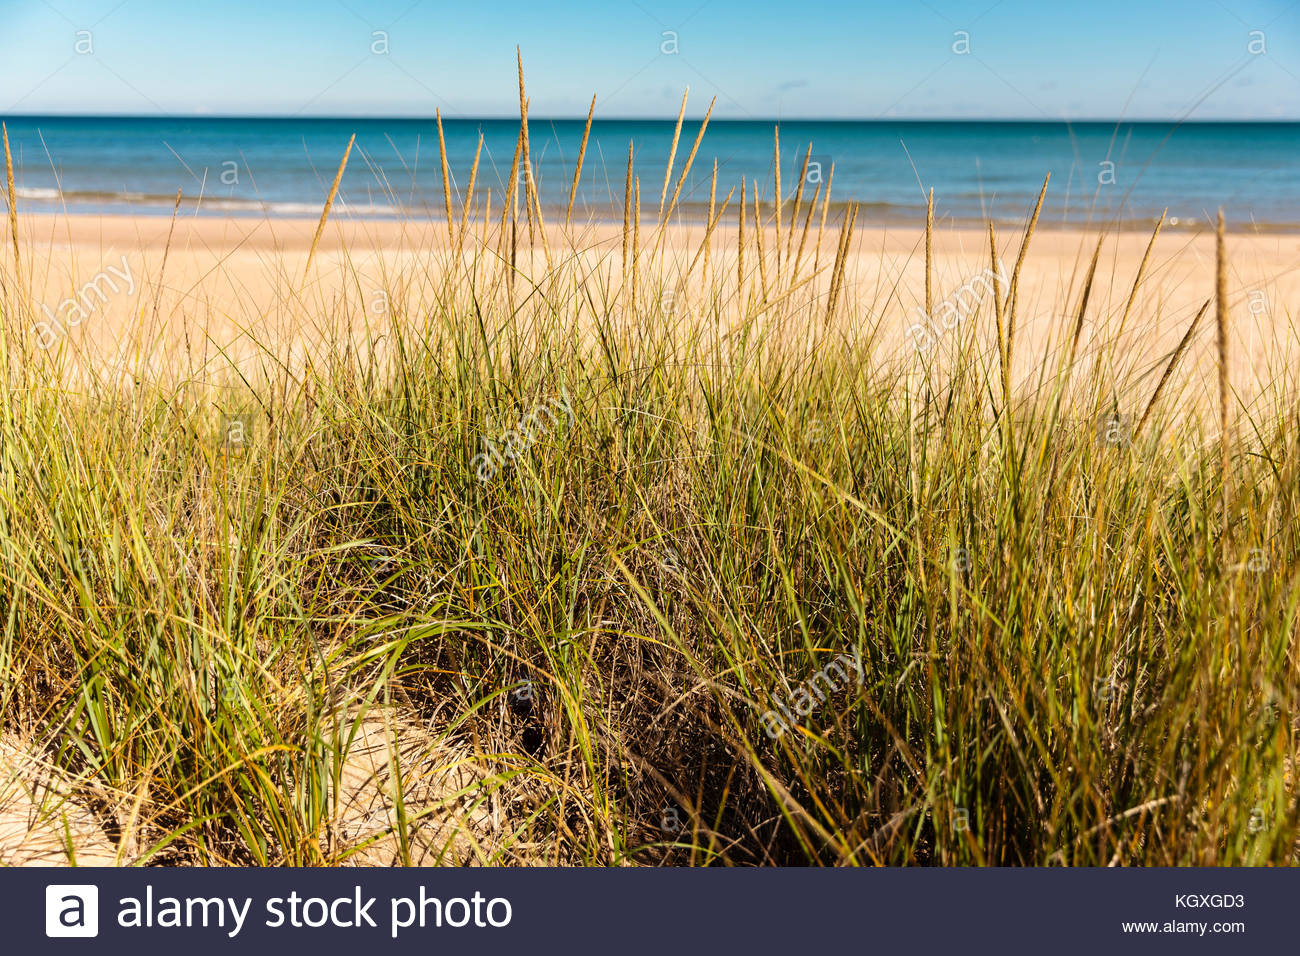 Looking at the calm Lake Michigan in eary October from behind the dune grasses at Harrington Beach State Park, Belgium, - Stock Image